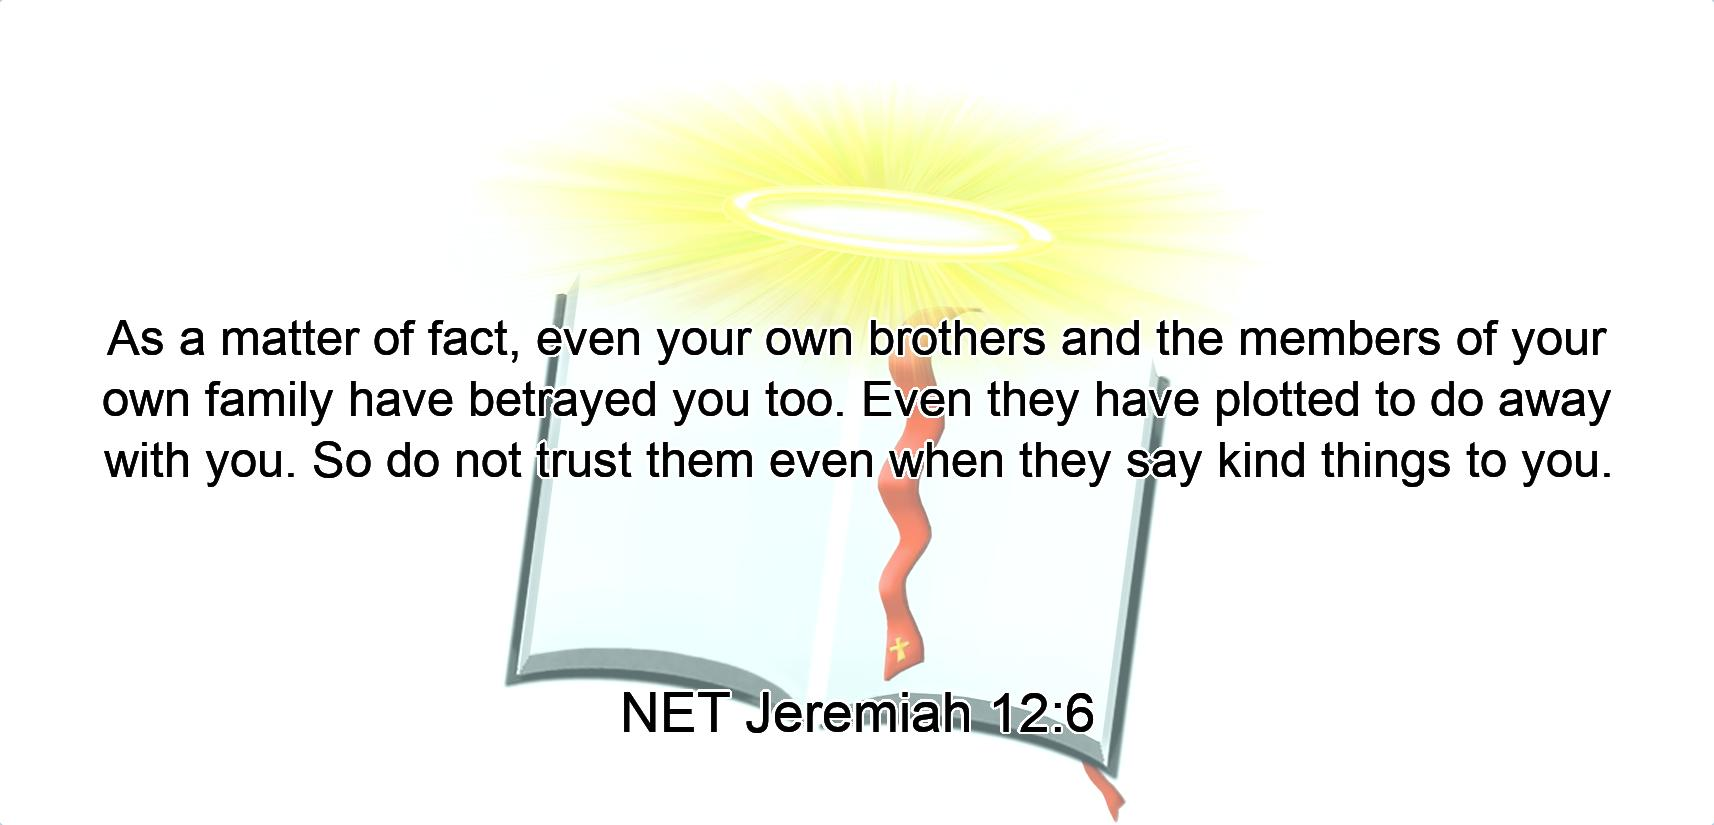 As a matter of fact,  even your own brothers and the members of your own family have betrayed you too. Even they have plotted to do away with you.  So do not trust them even when they say kind things  to you.